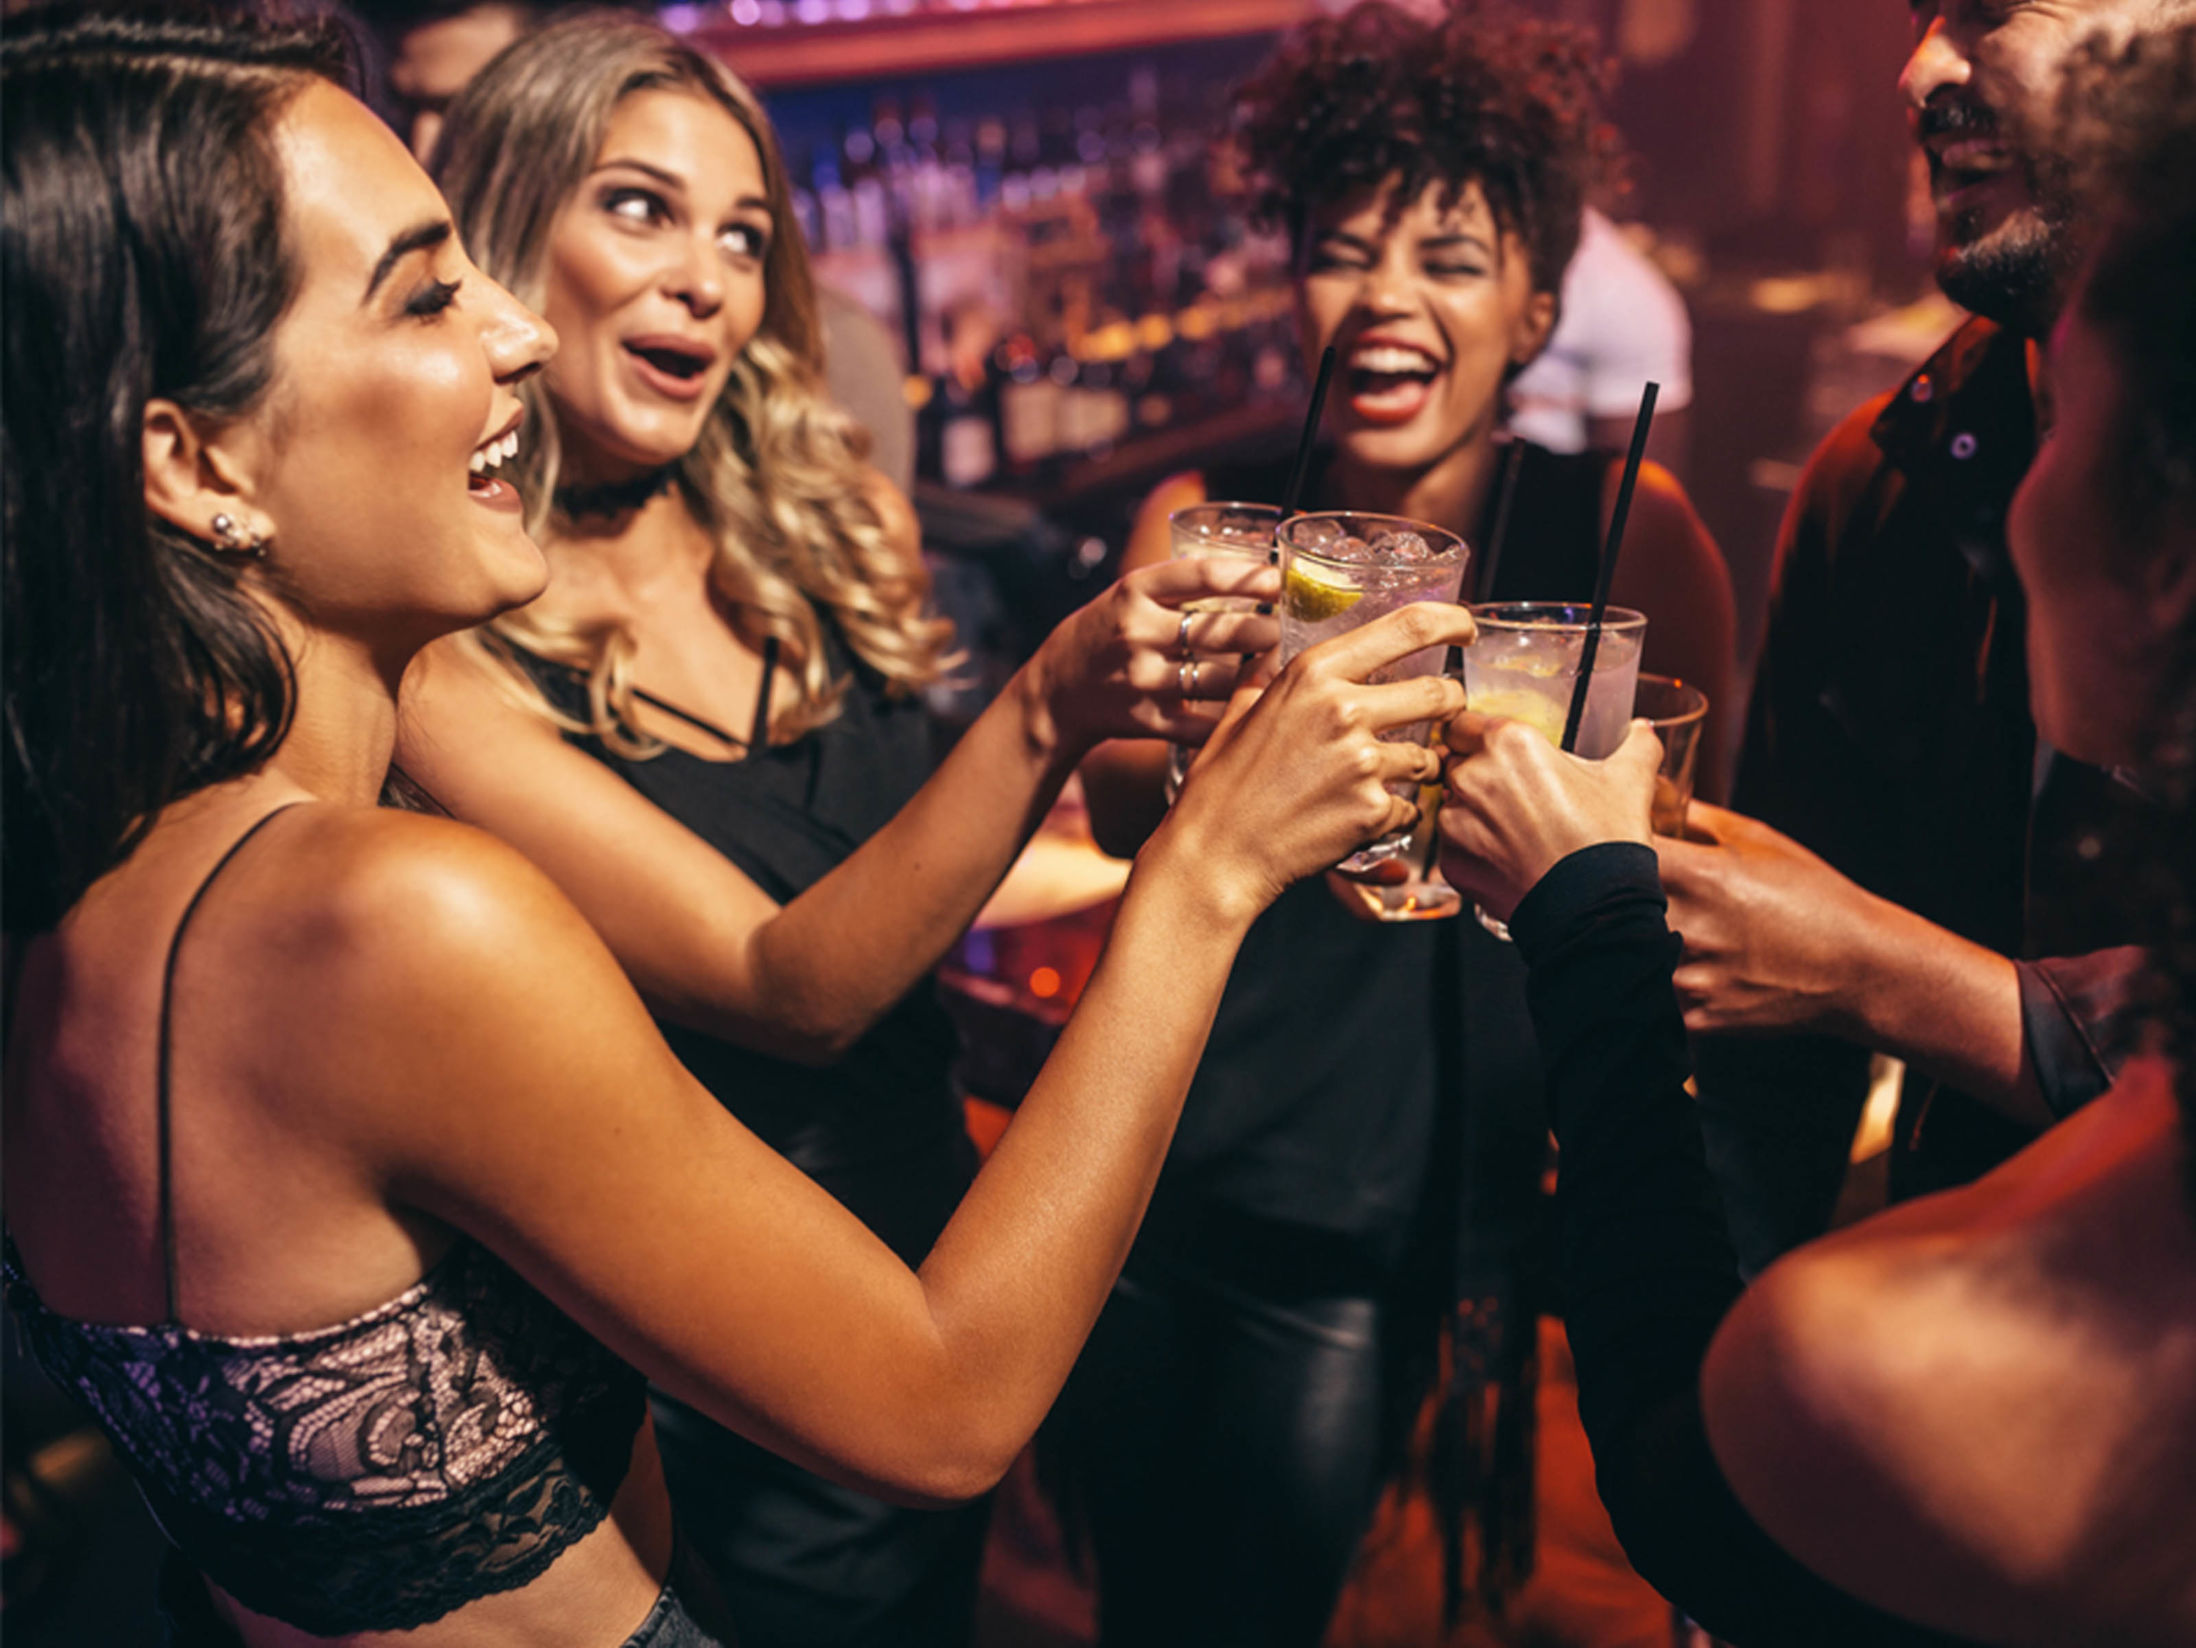 Looking for Instant Hen Do Ideas in Manchester?